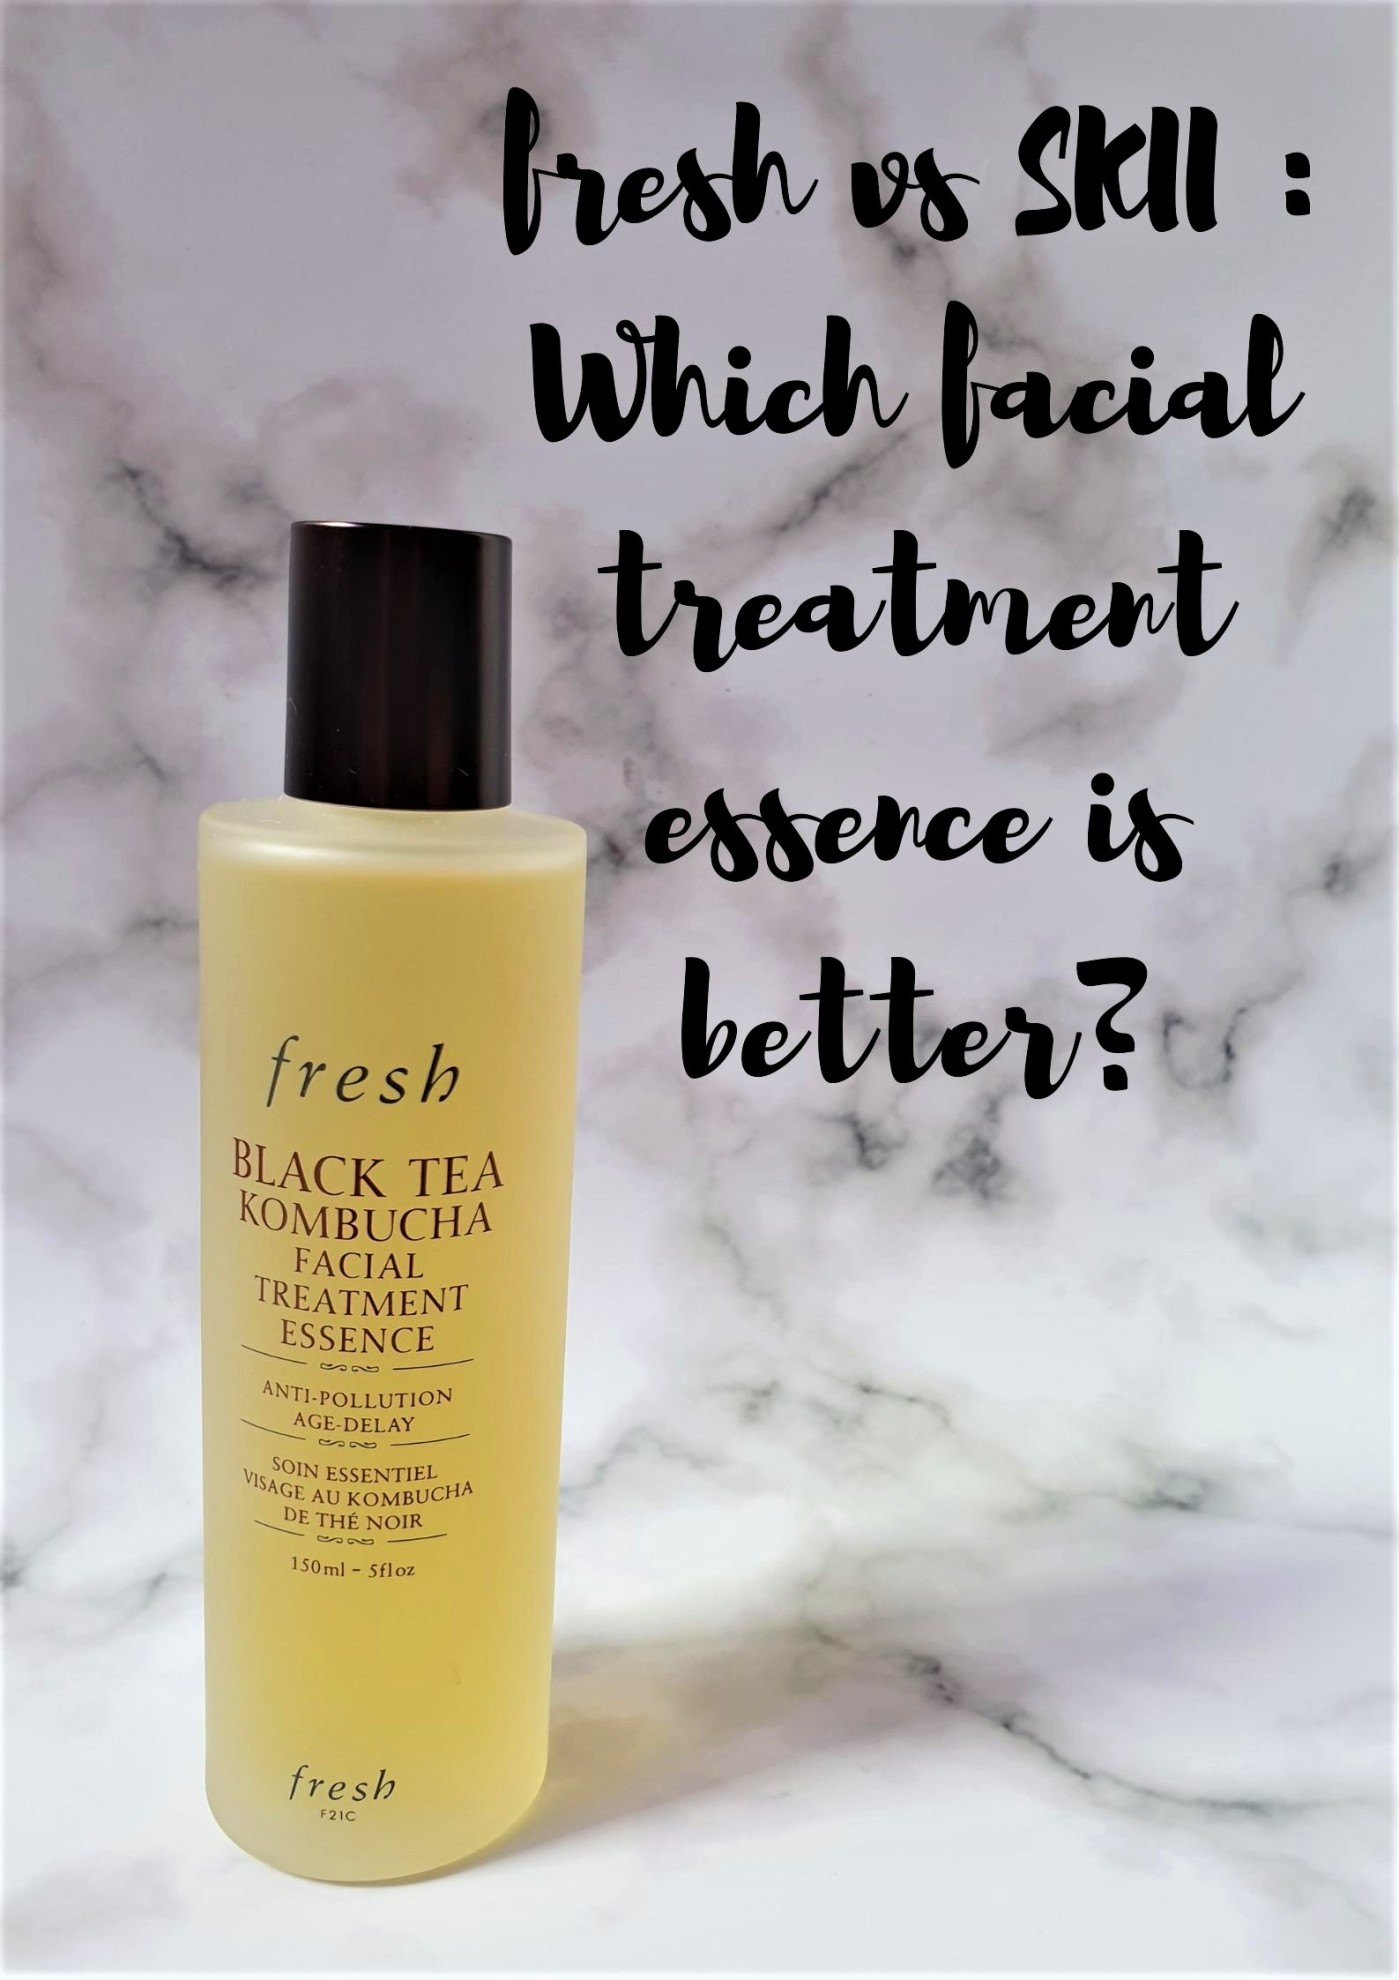 fresh black tea kombucha facial treatment essence (